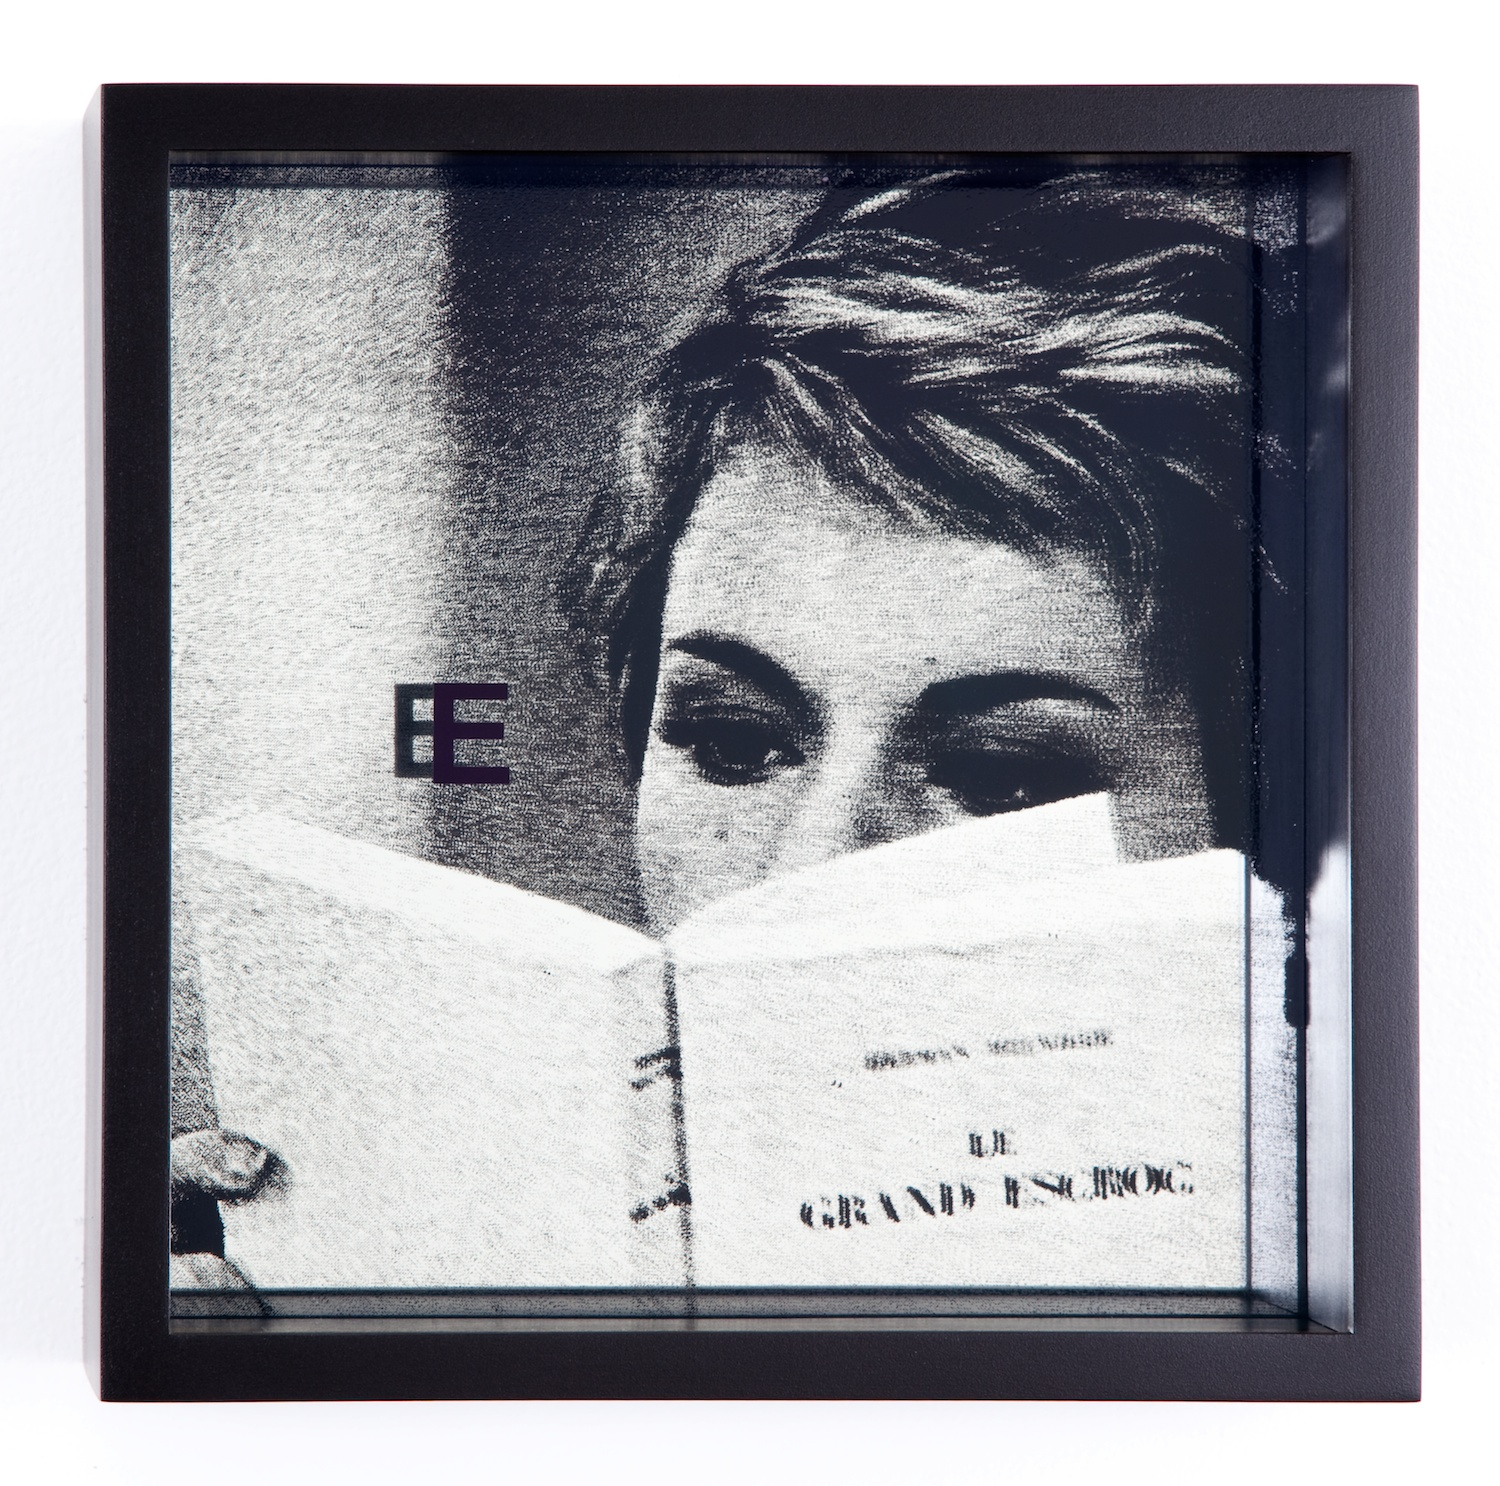 Adam Pendleton  System of Display, E (ETERNAL/Against/Jean-Luc Godard, Le Grand Escroc, episode from Les Plus Belles Escroqeries du Monde, 1964)  2011 Silkscreen on glass and mirror 9 ⅞h x 9 ⅞w x 3d in AdamP012